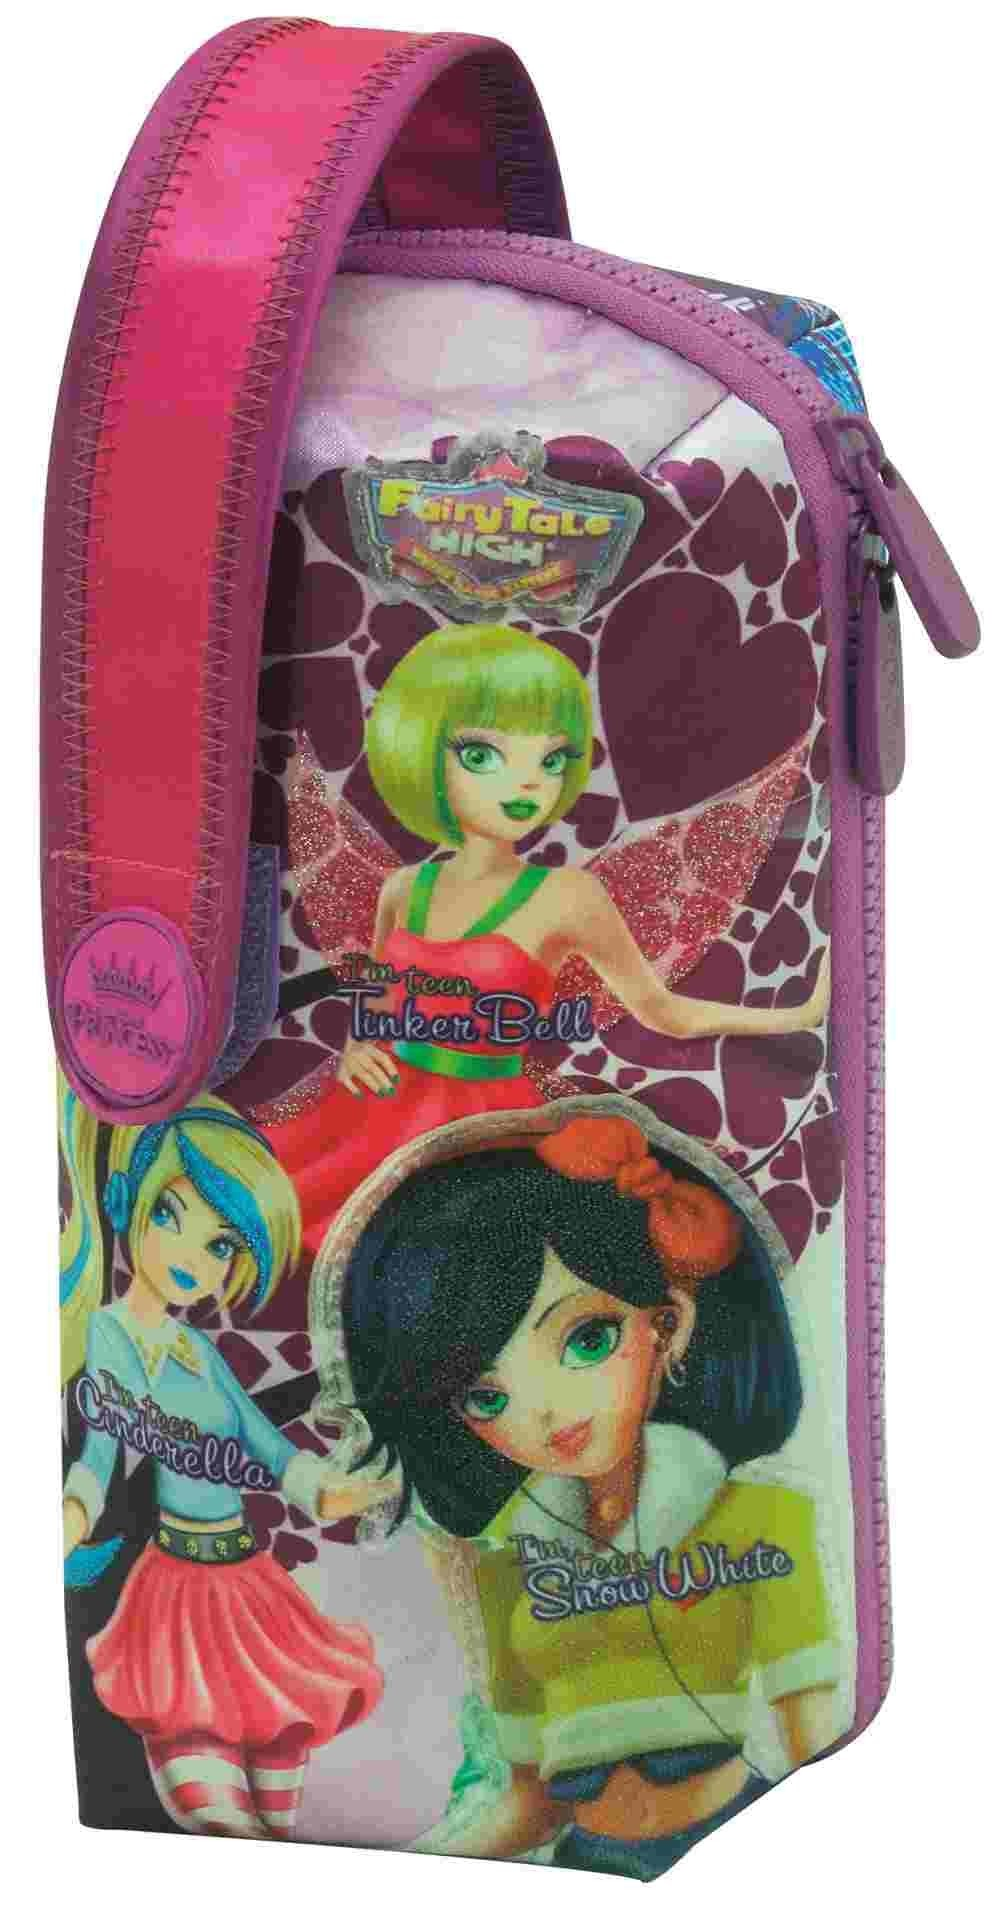 Estuche Multiportatodo Fairy Tale High